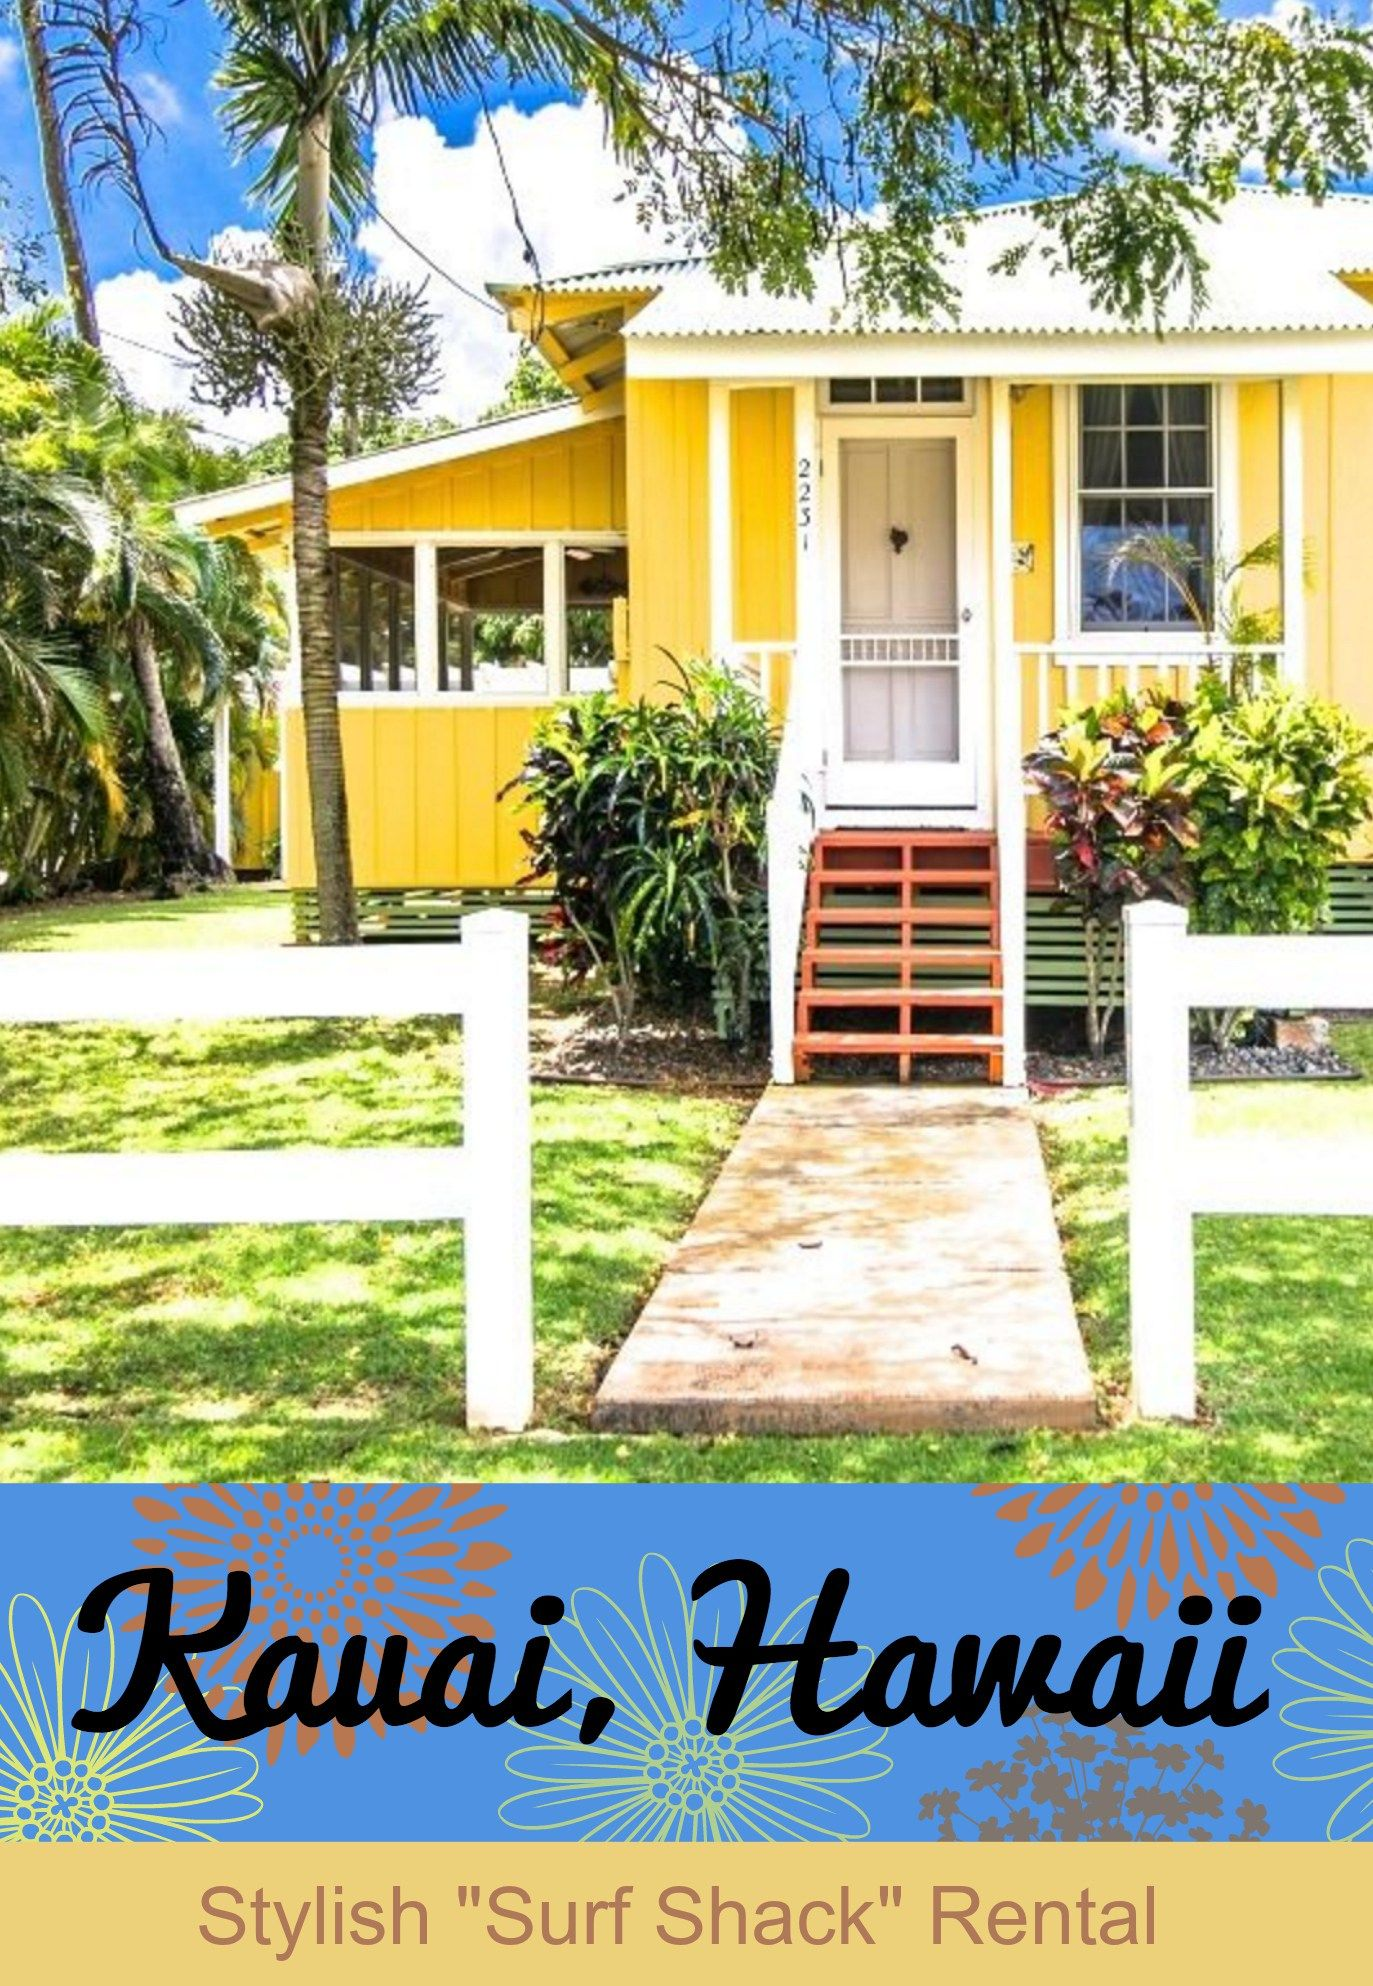 This Kauai Cottage Is Vacation Al Of The Week On Travel Blog Rover Home It Features A Modern Style With Clean Lines And Beach House Coastal